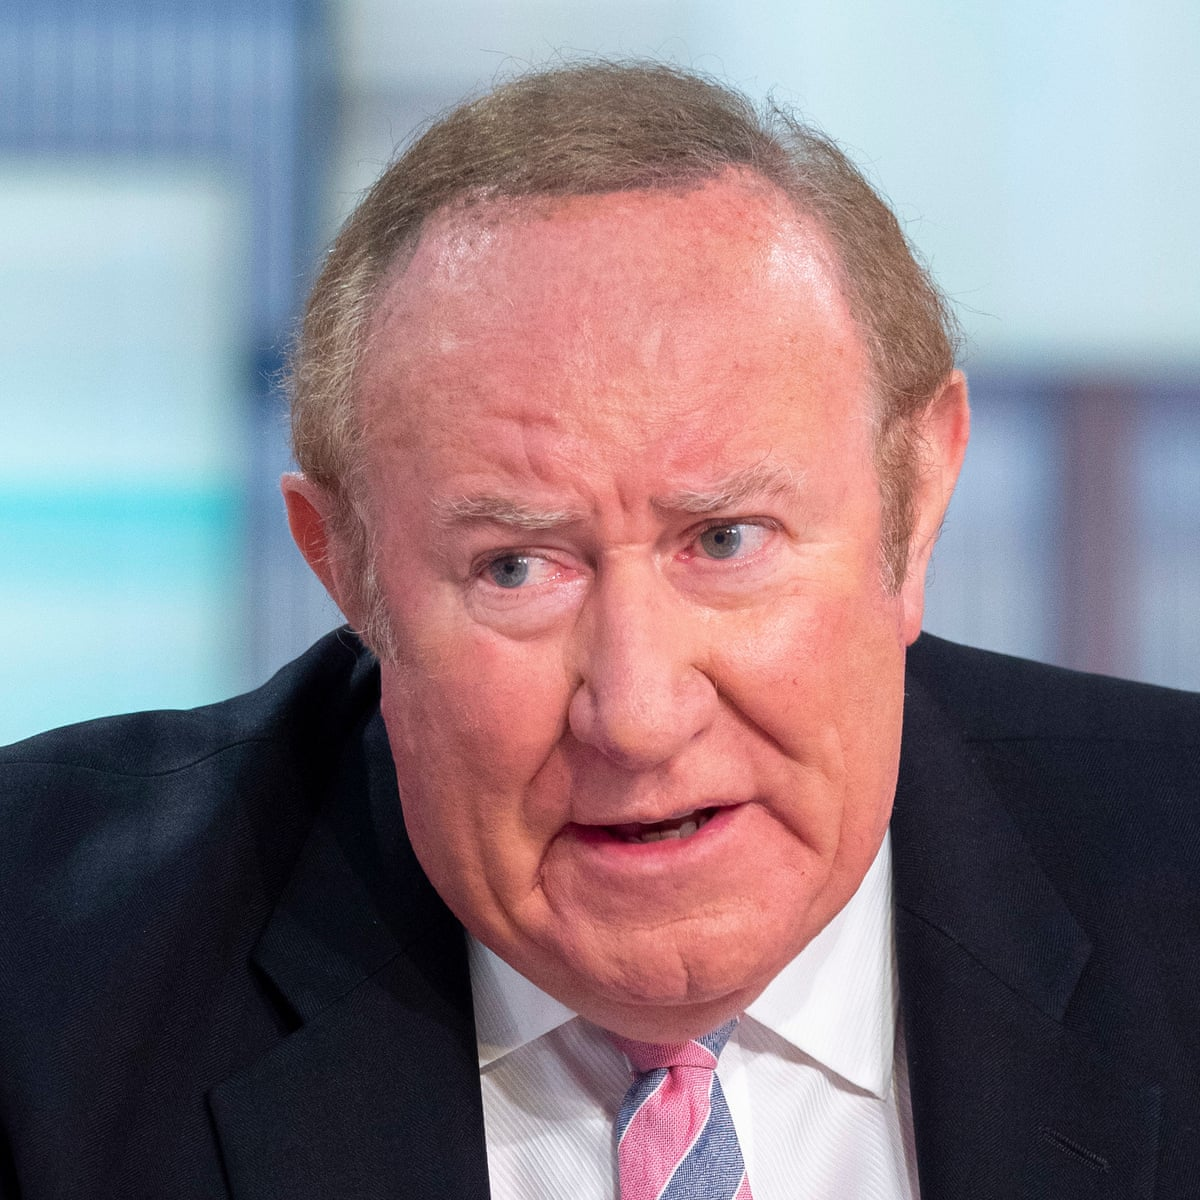 Andrew Neil launches 24-hour news channel to rival BBC and Sky | Andrew Neil | The Guardian